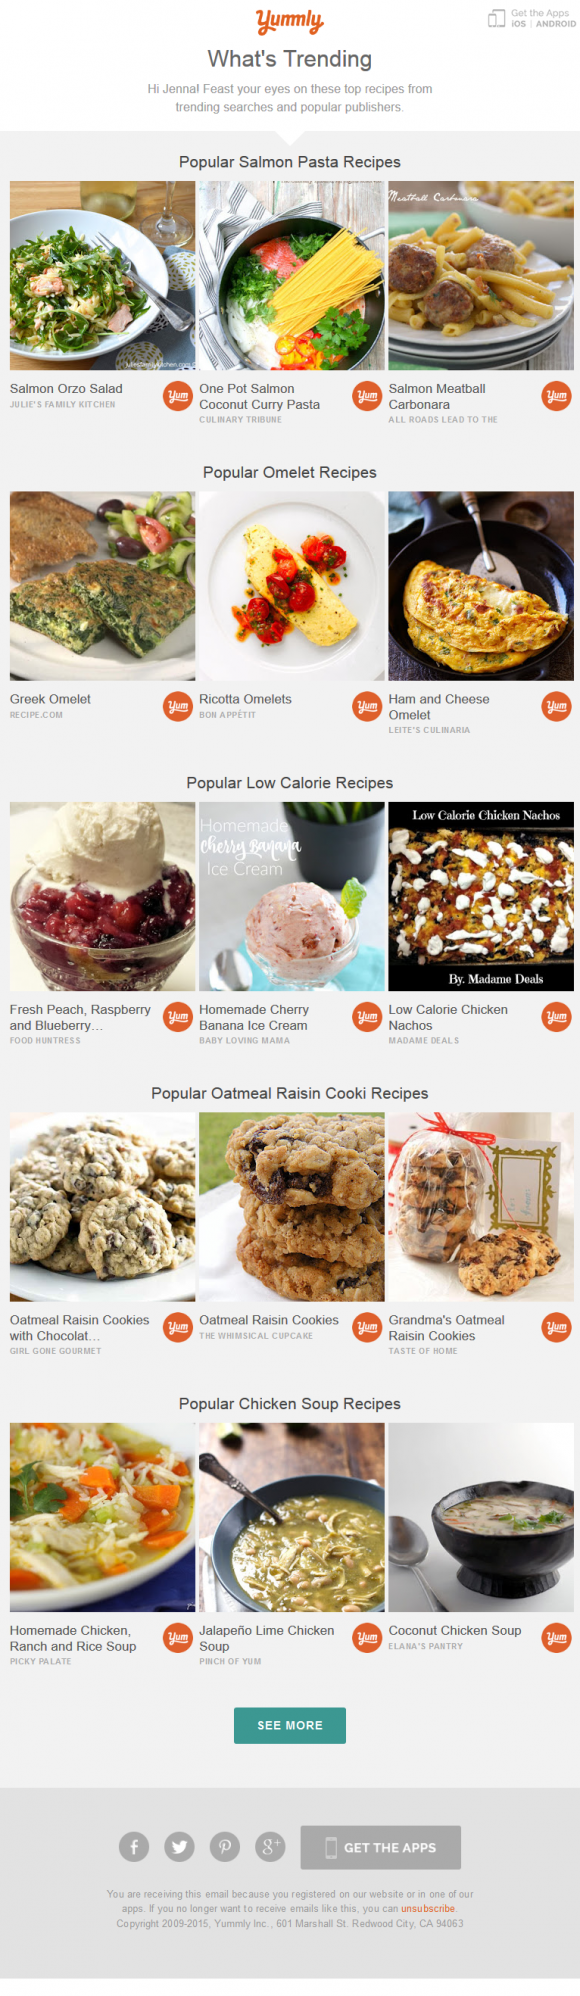 Trending recipes on yummly beautiful email newsletters trending recipes on yummly forumfinder Image collections